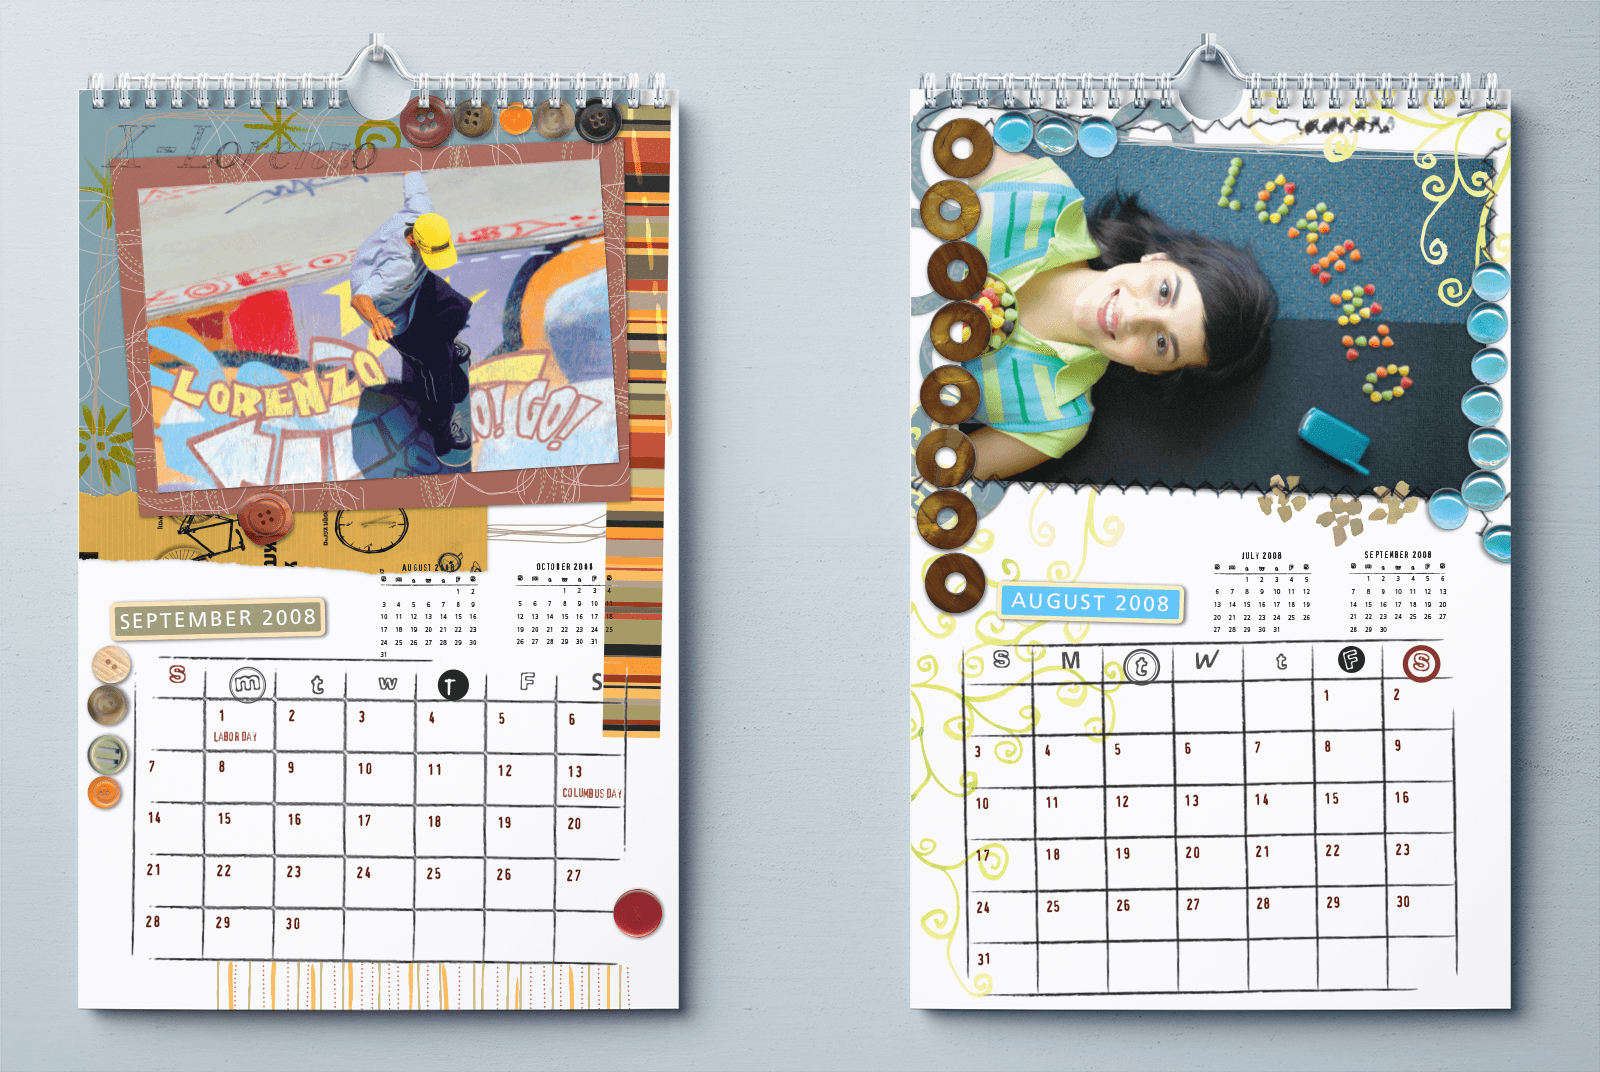 https://bigeyes.co.il/wp-content/uploads/2019/07/highschool-calendar-2.png